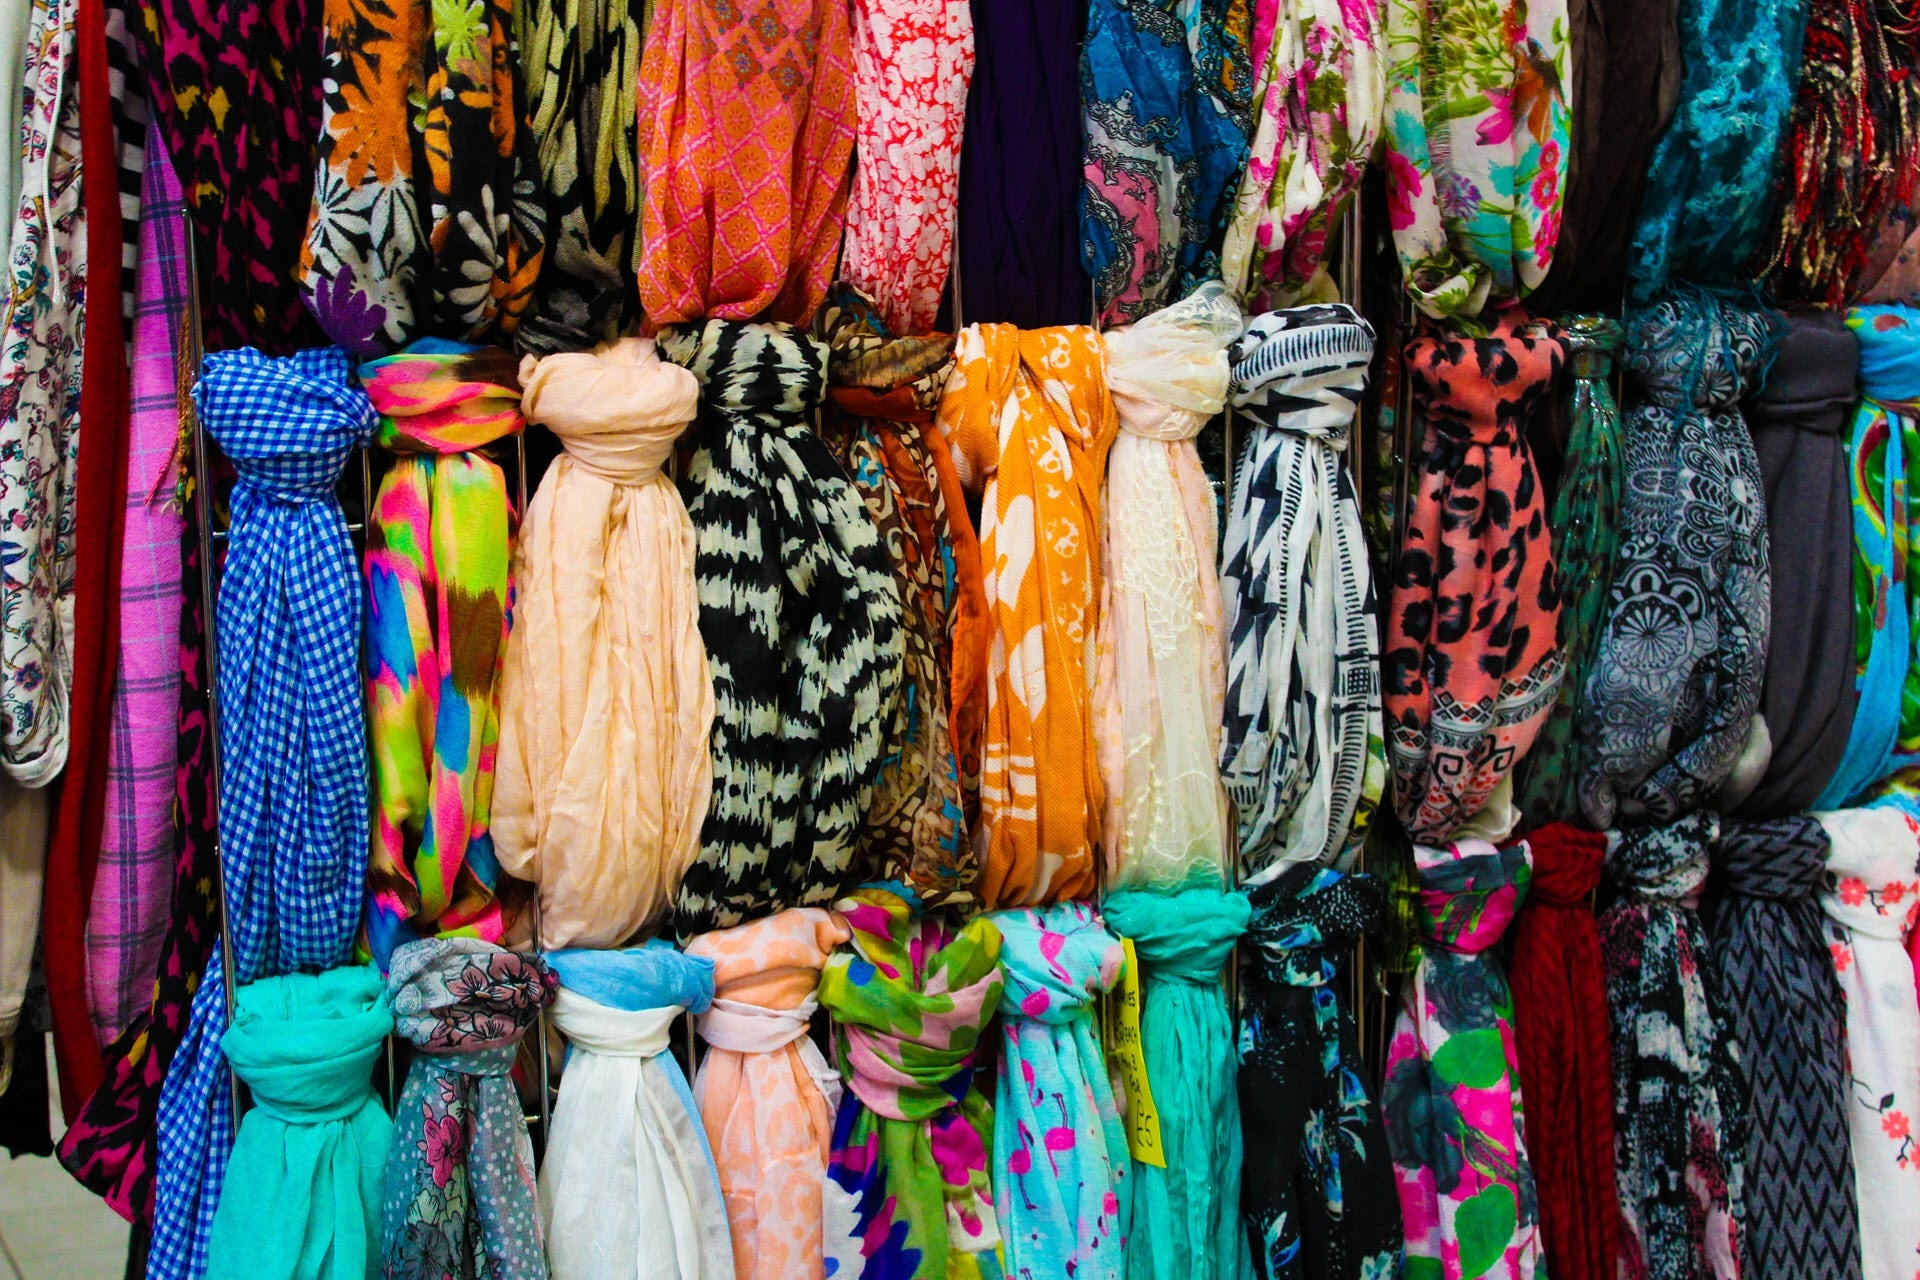 How to Store Scarves Without Wrinkling (30 Creative Ideas)